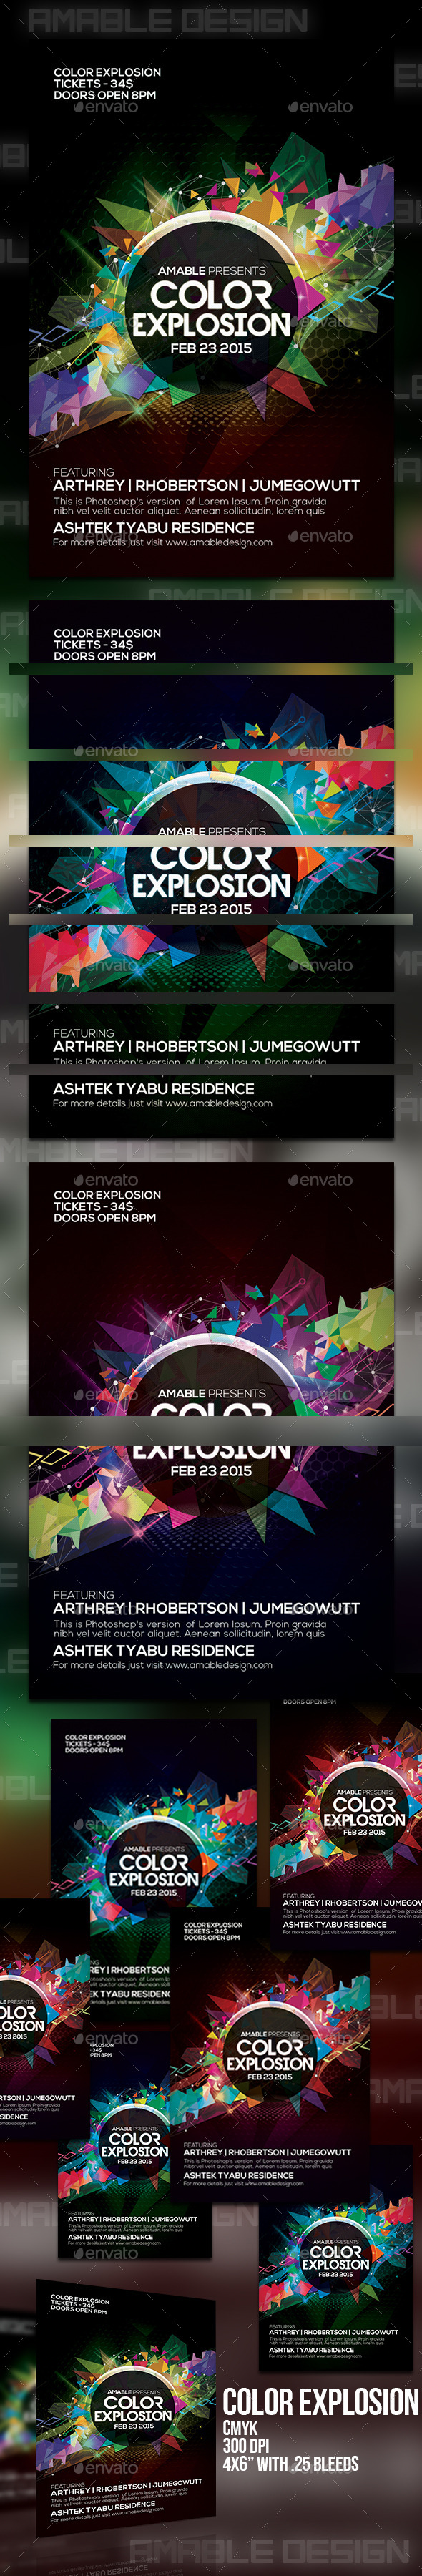 GraphicRiver Color Explosion Flyer 10436144